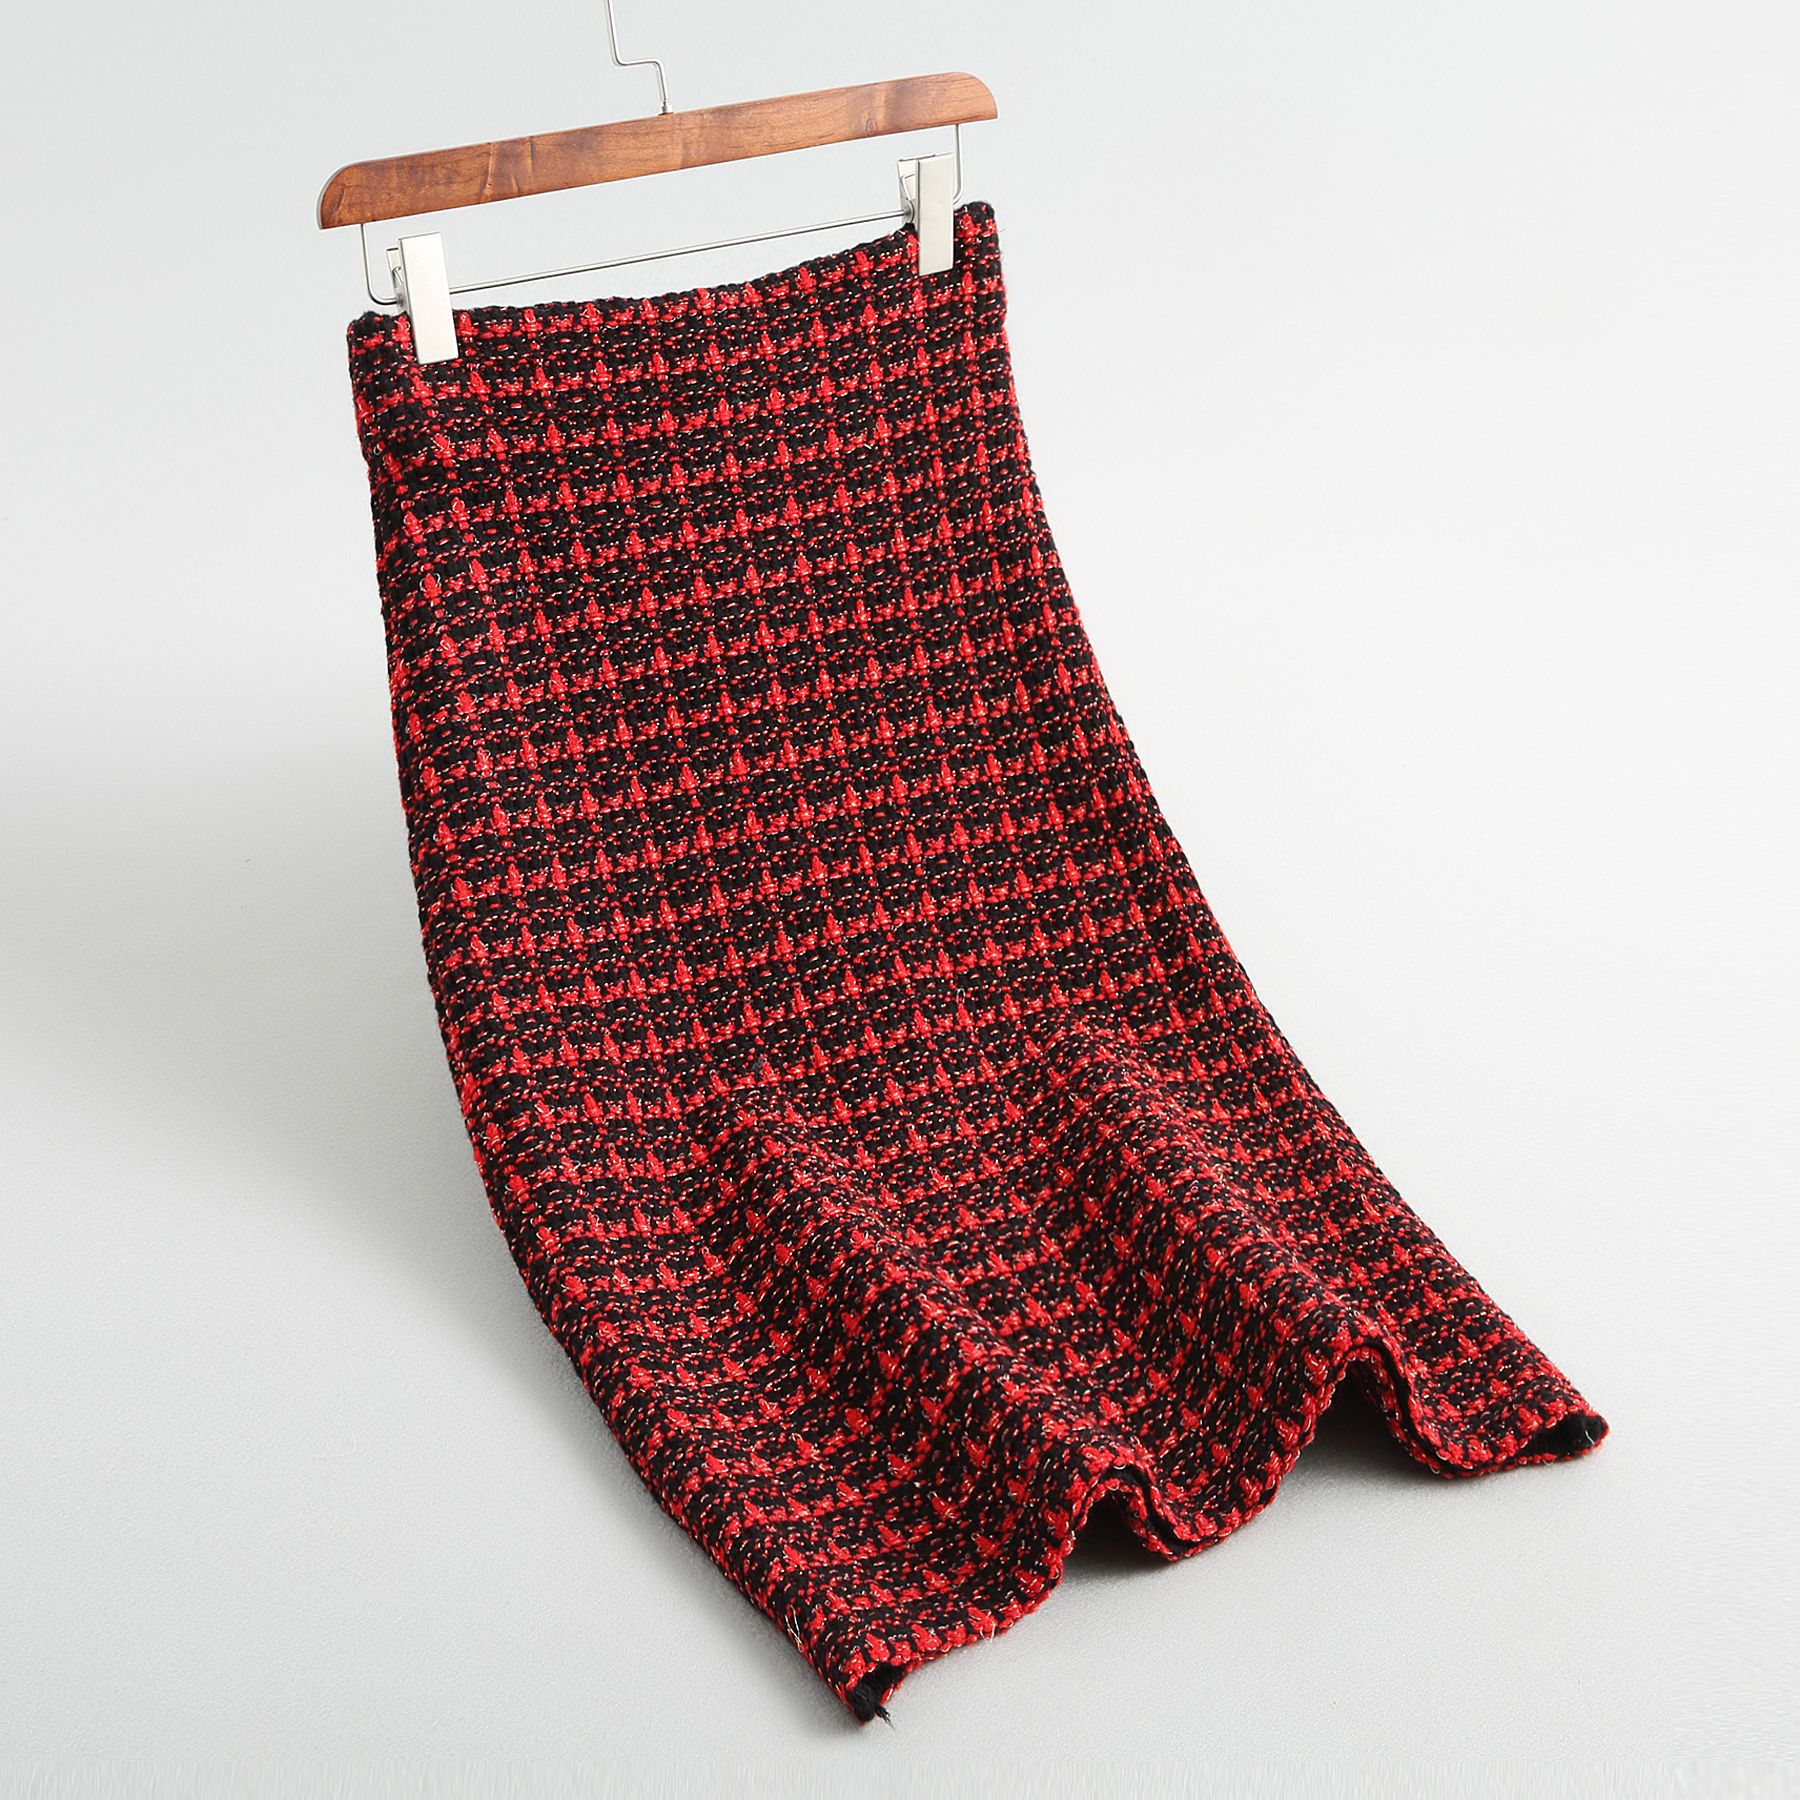 19 Spring autumn New tweed Women's skirt elegant Office Double Breasted plaid knitted Vintage Package Hip midi skirt Female 15